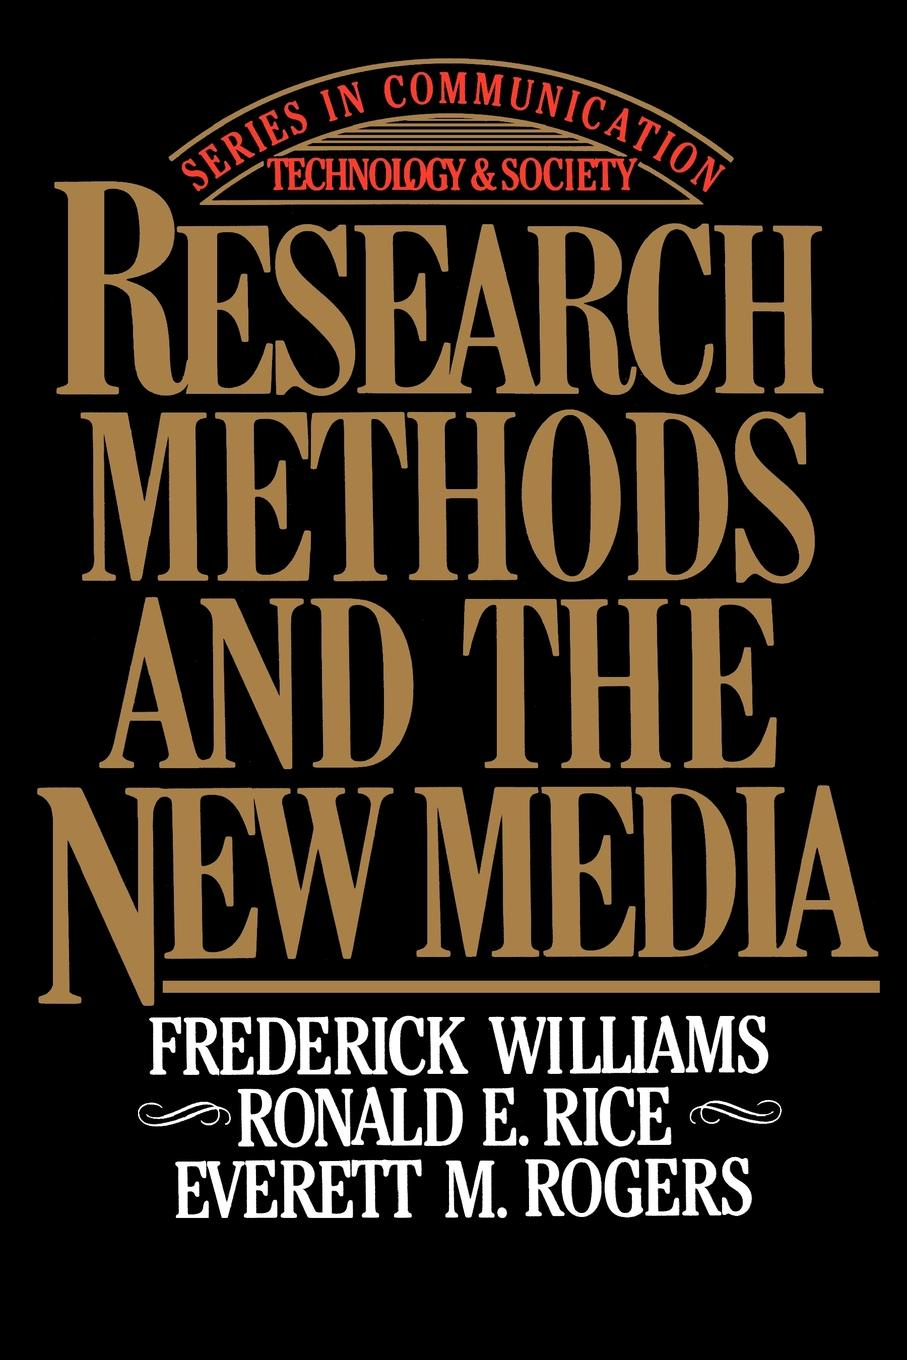 Frederick Williams, Ronald E. Rice, Everett M. Rogers Research Methods and the New Media